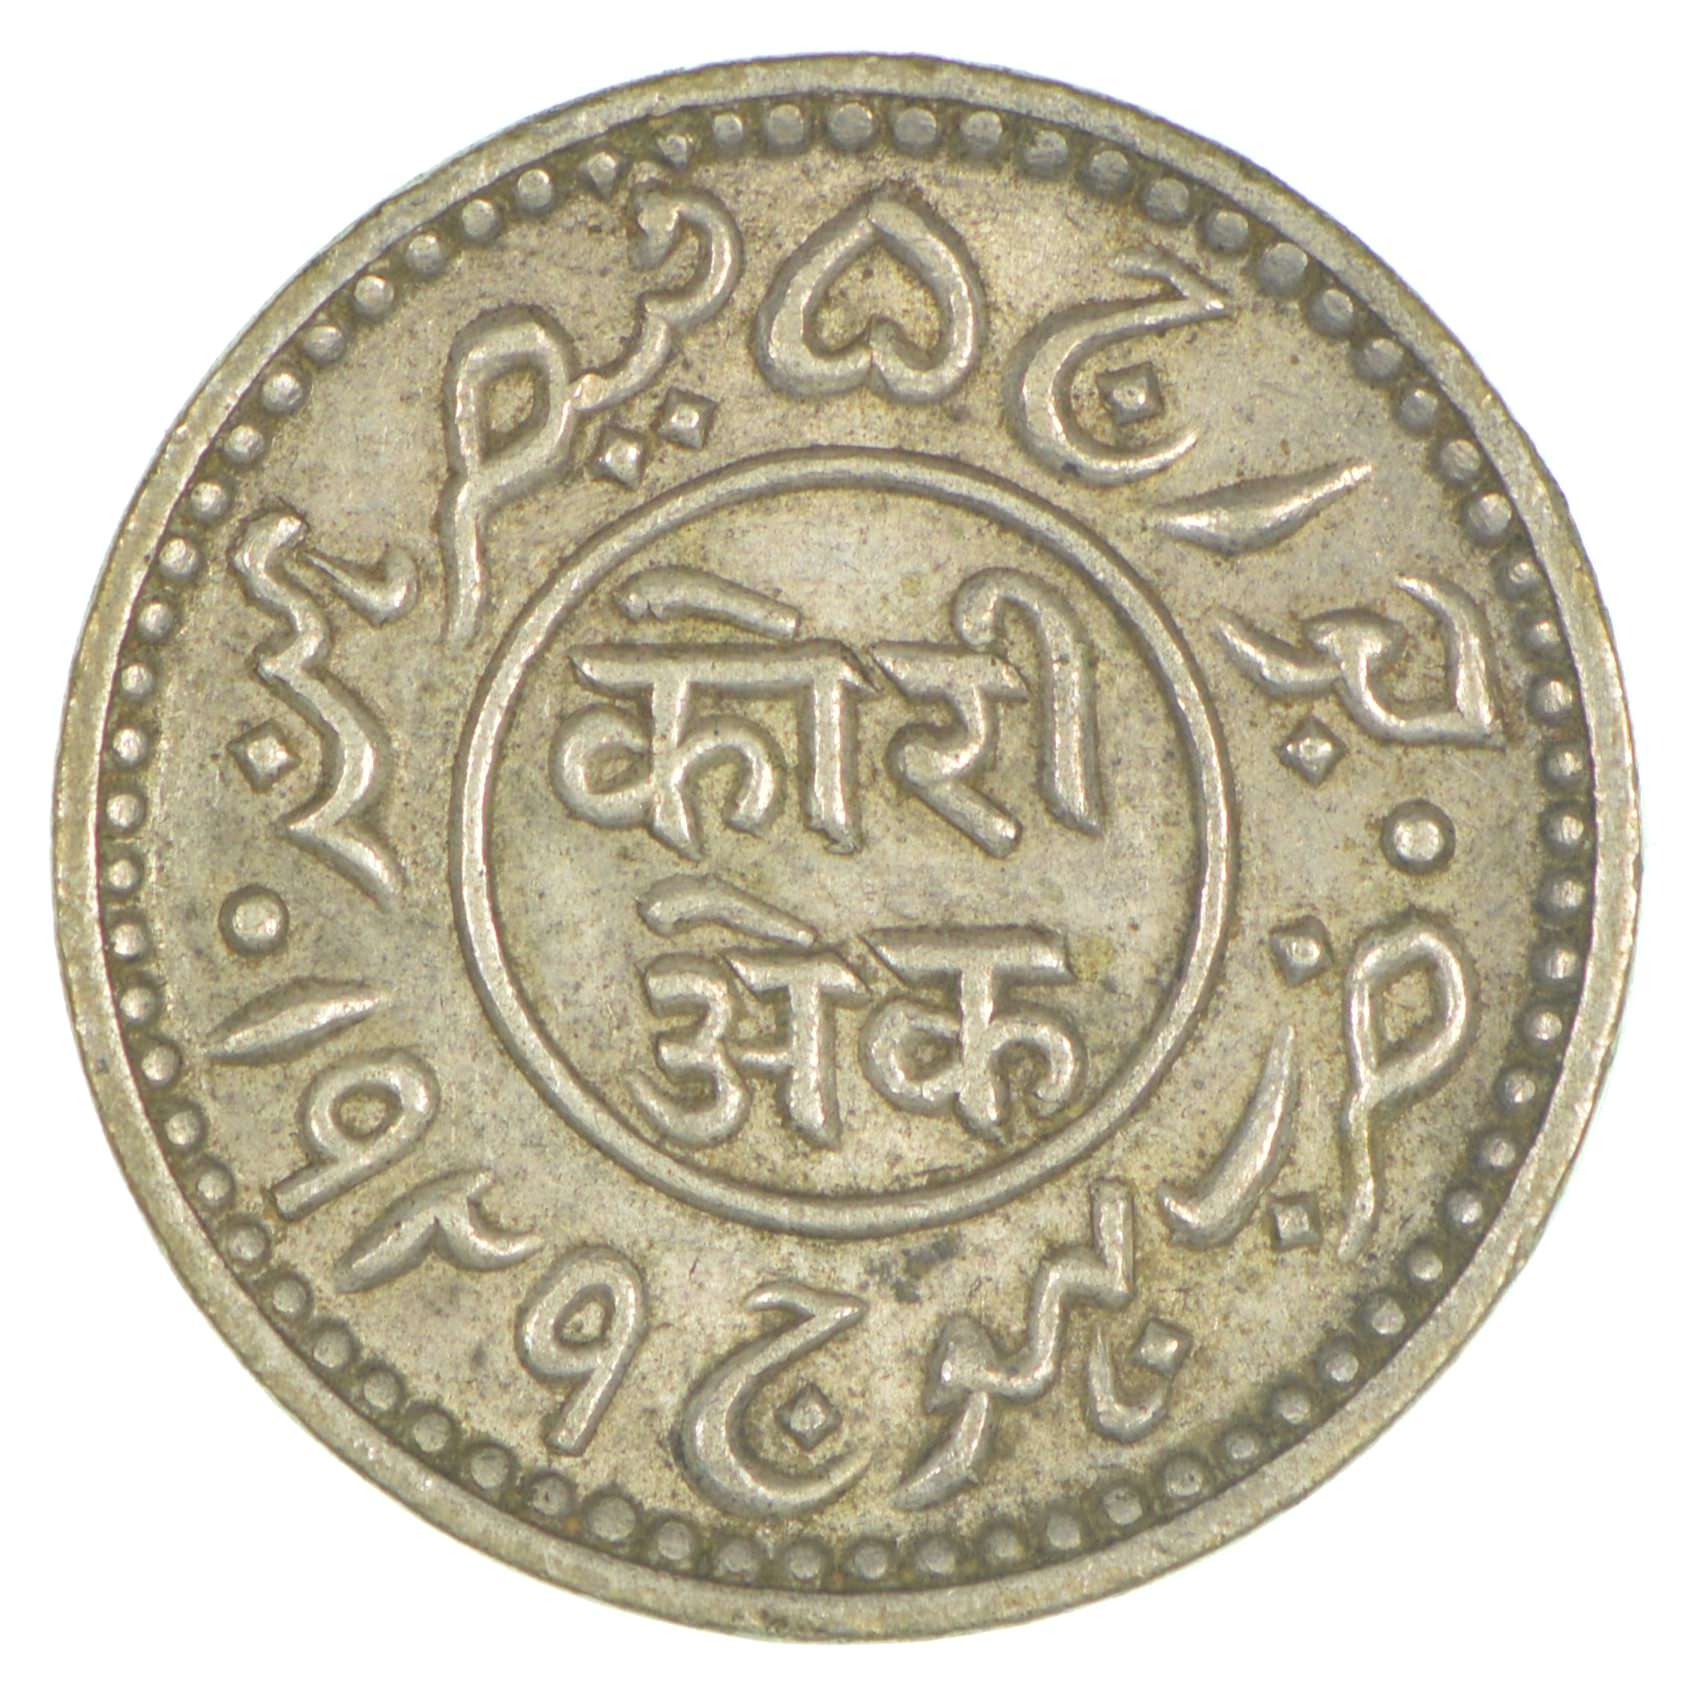 Unique Coin Unique South Asian Coin Property Room